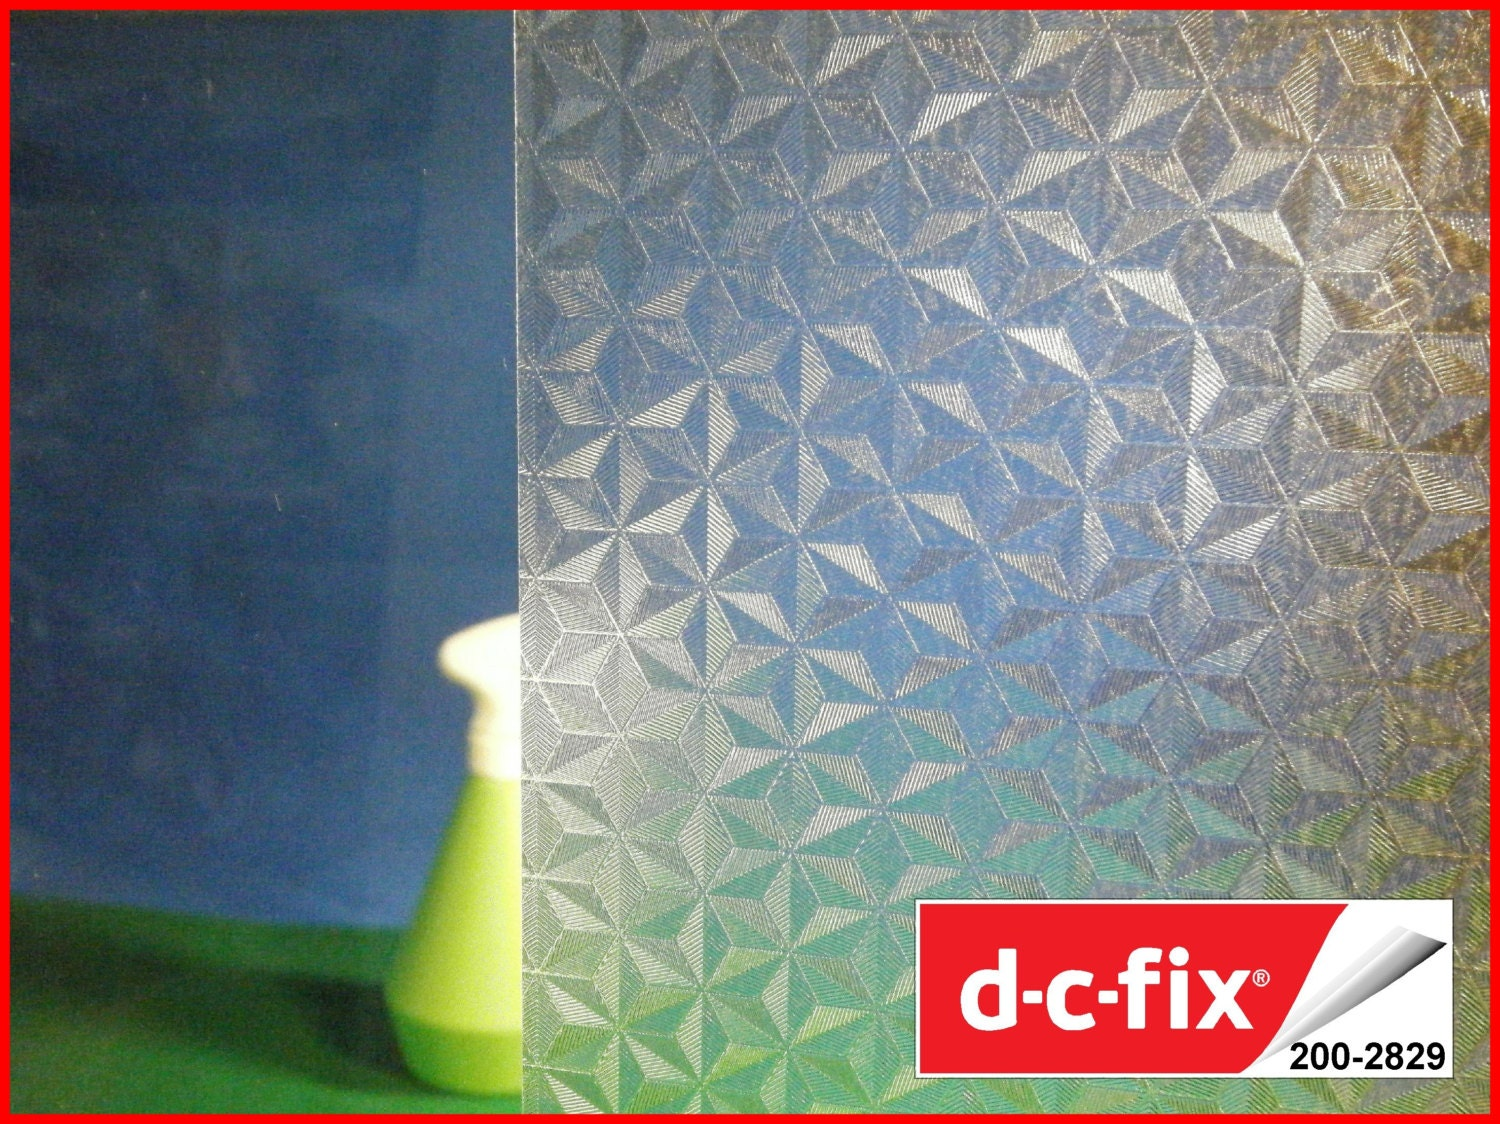 Contact paper dc fix transparent pattern privacy design - Dc fix tischdecken ...